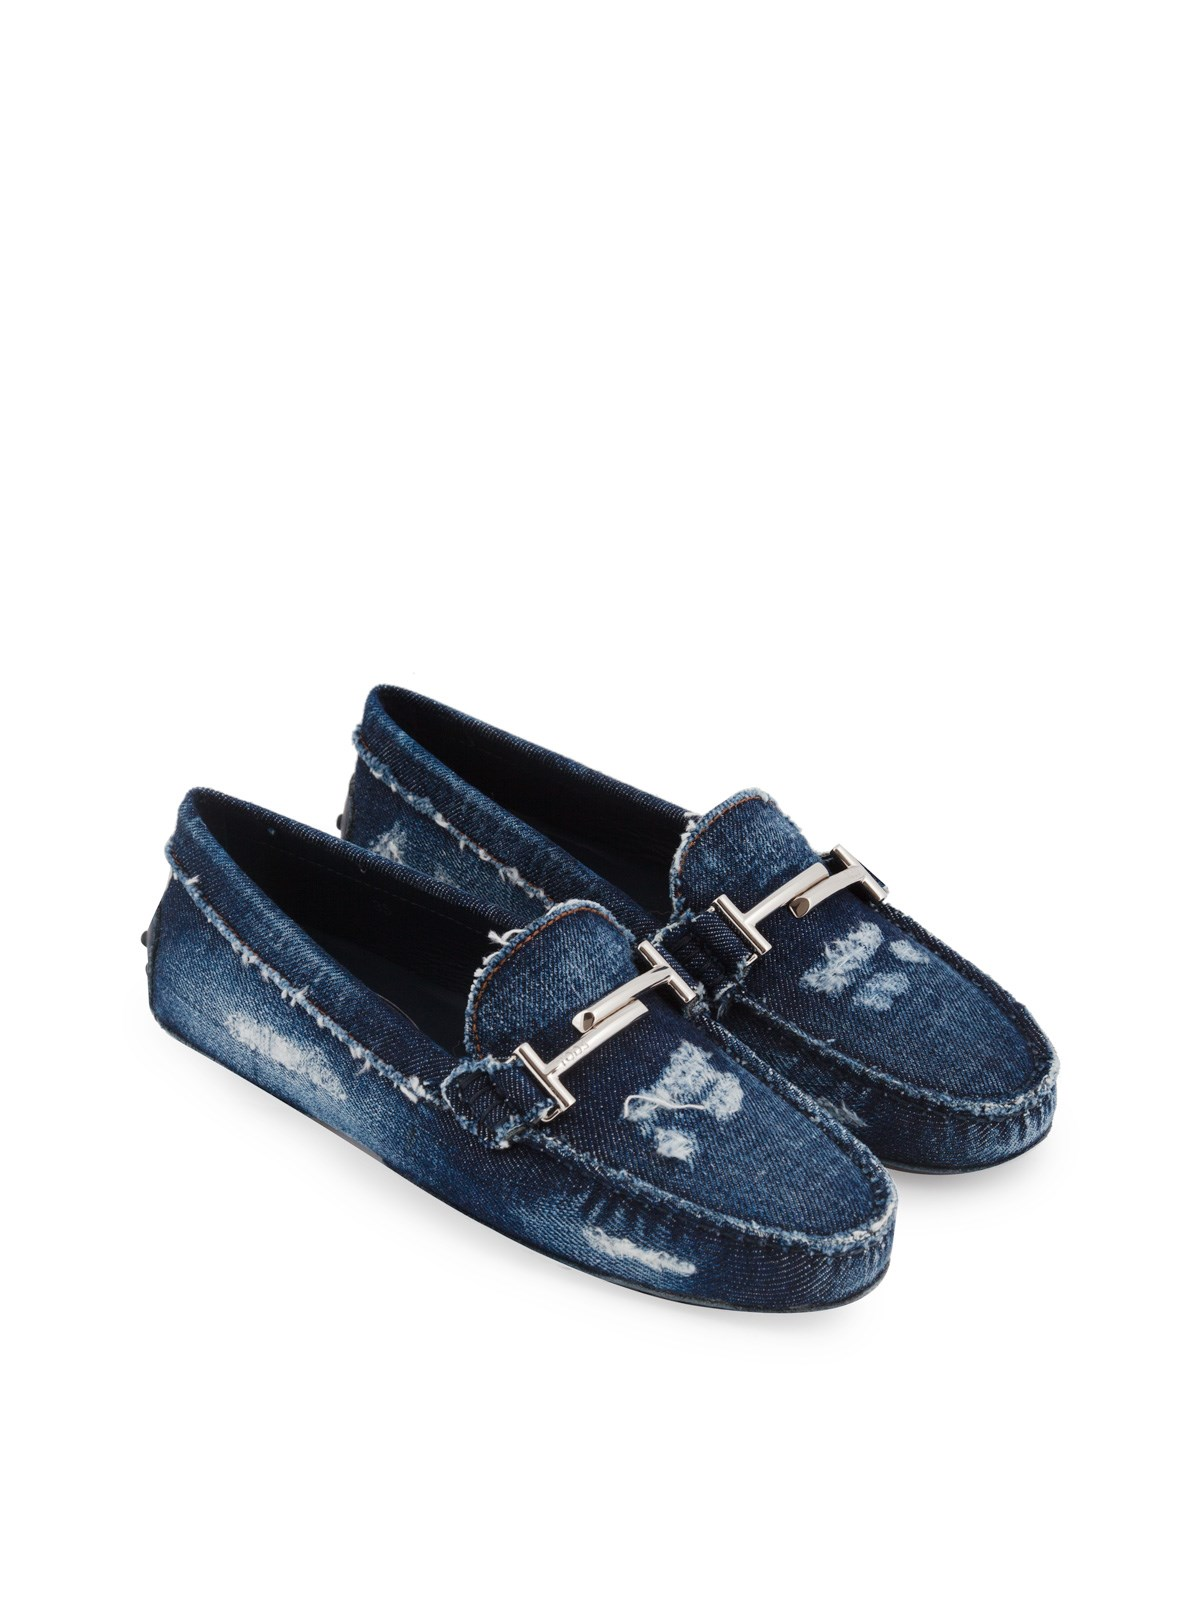 Loafers in Denim Tod's